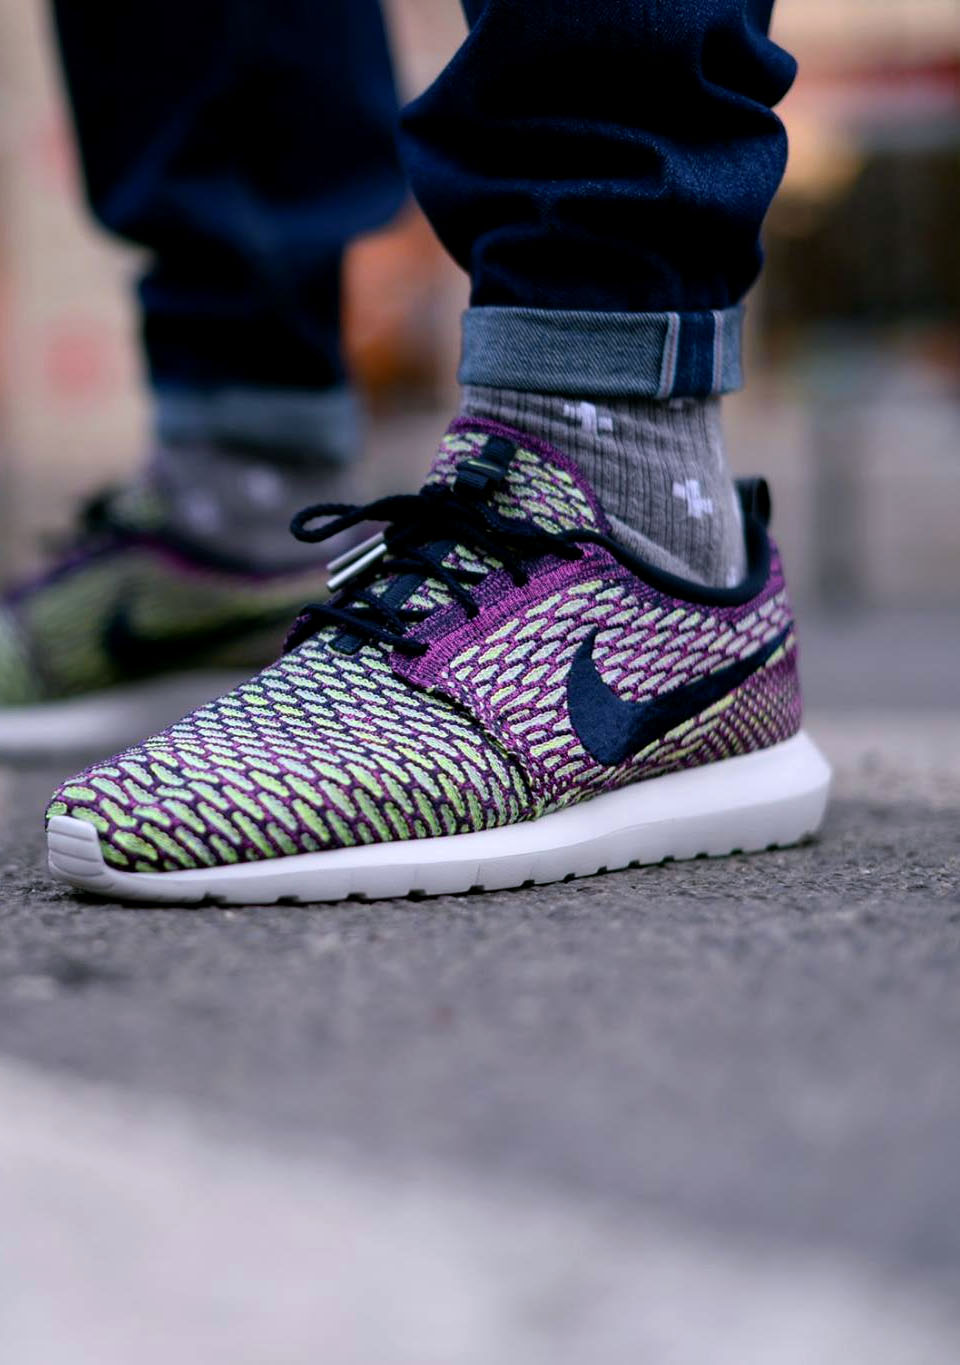 Czech Nike Floral Roshe - Premium Materials Nike Roshe Run Sneaker Women S Trainers Voilet Volt Great Quality Nike Discount